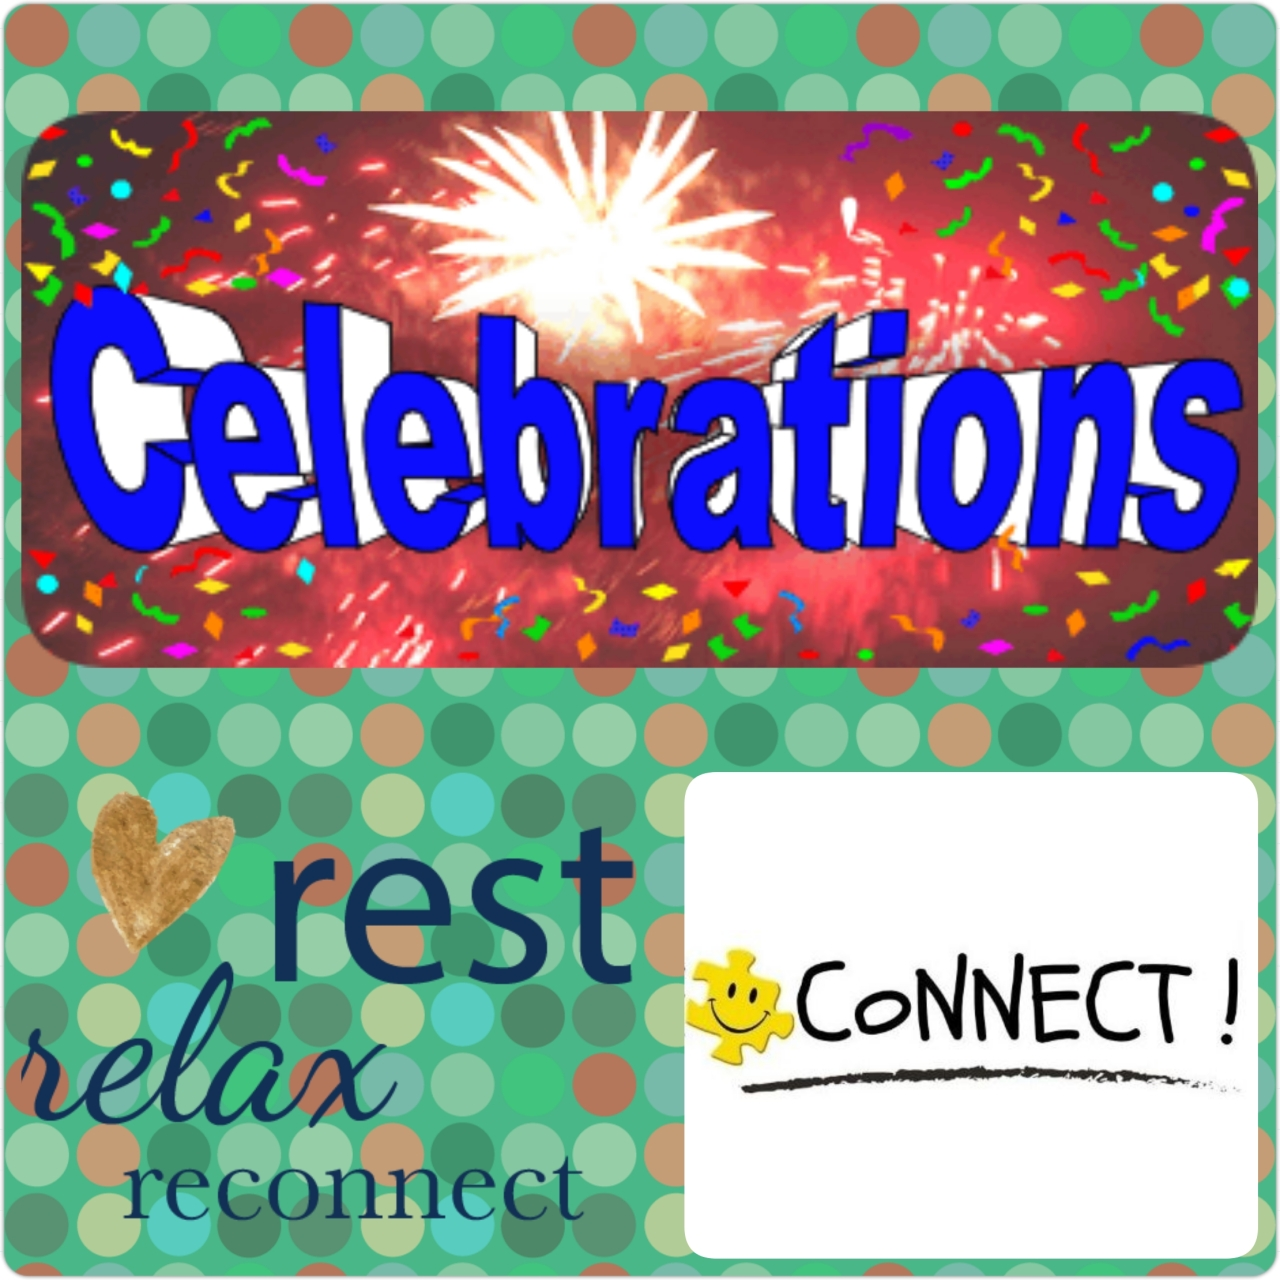 A month of Celebrations – Connecting andReconnecting